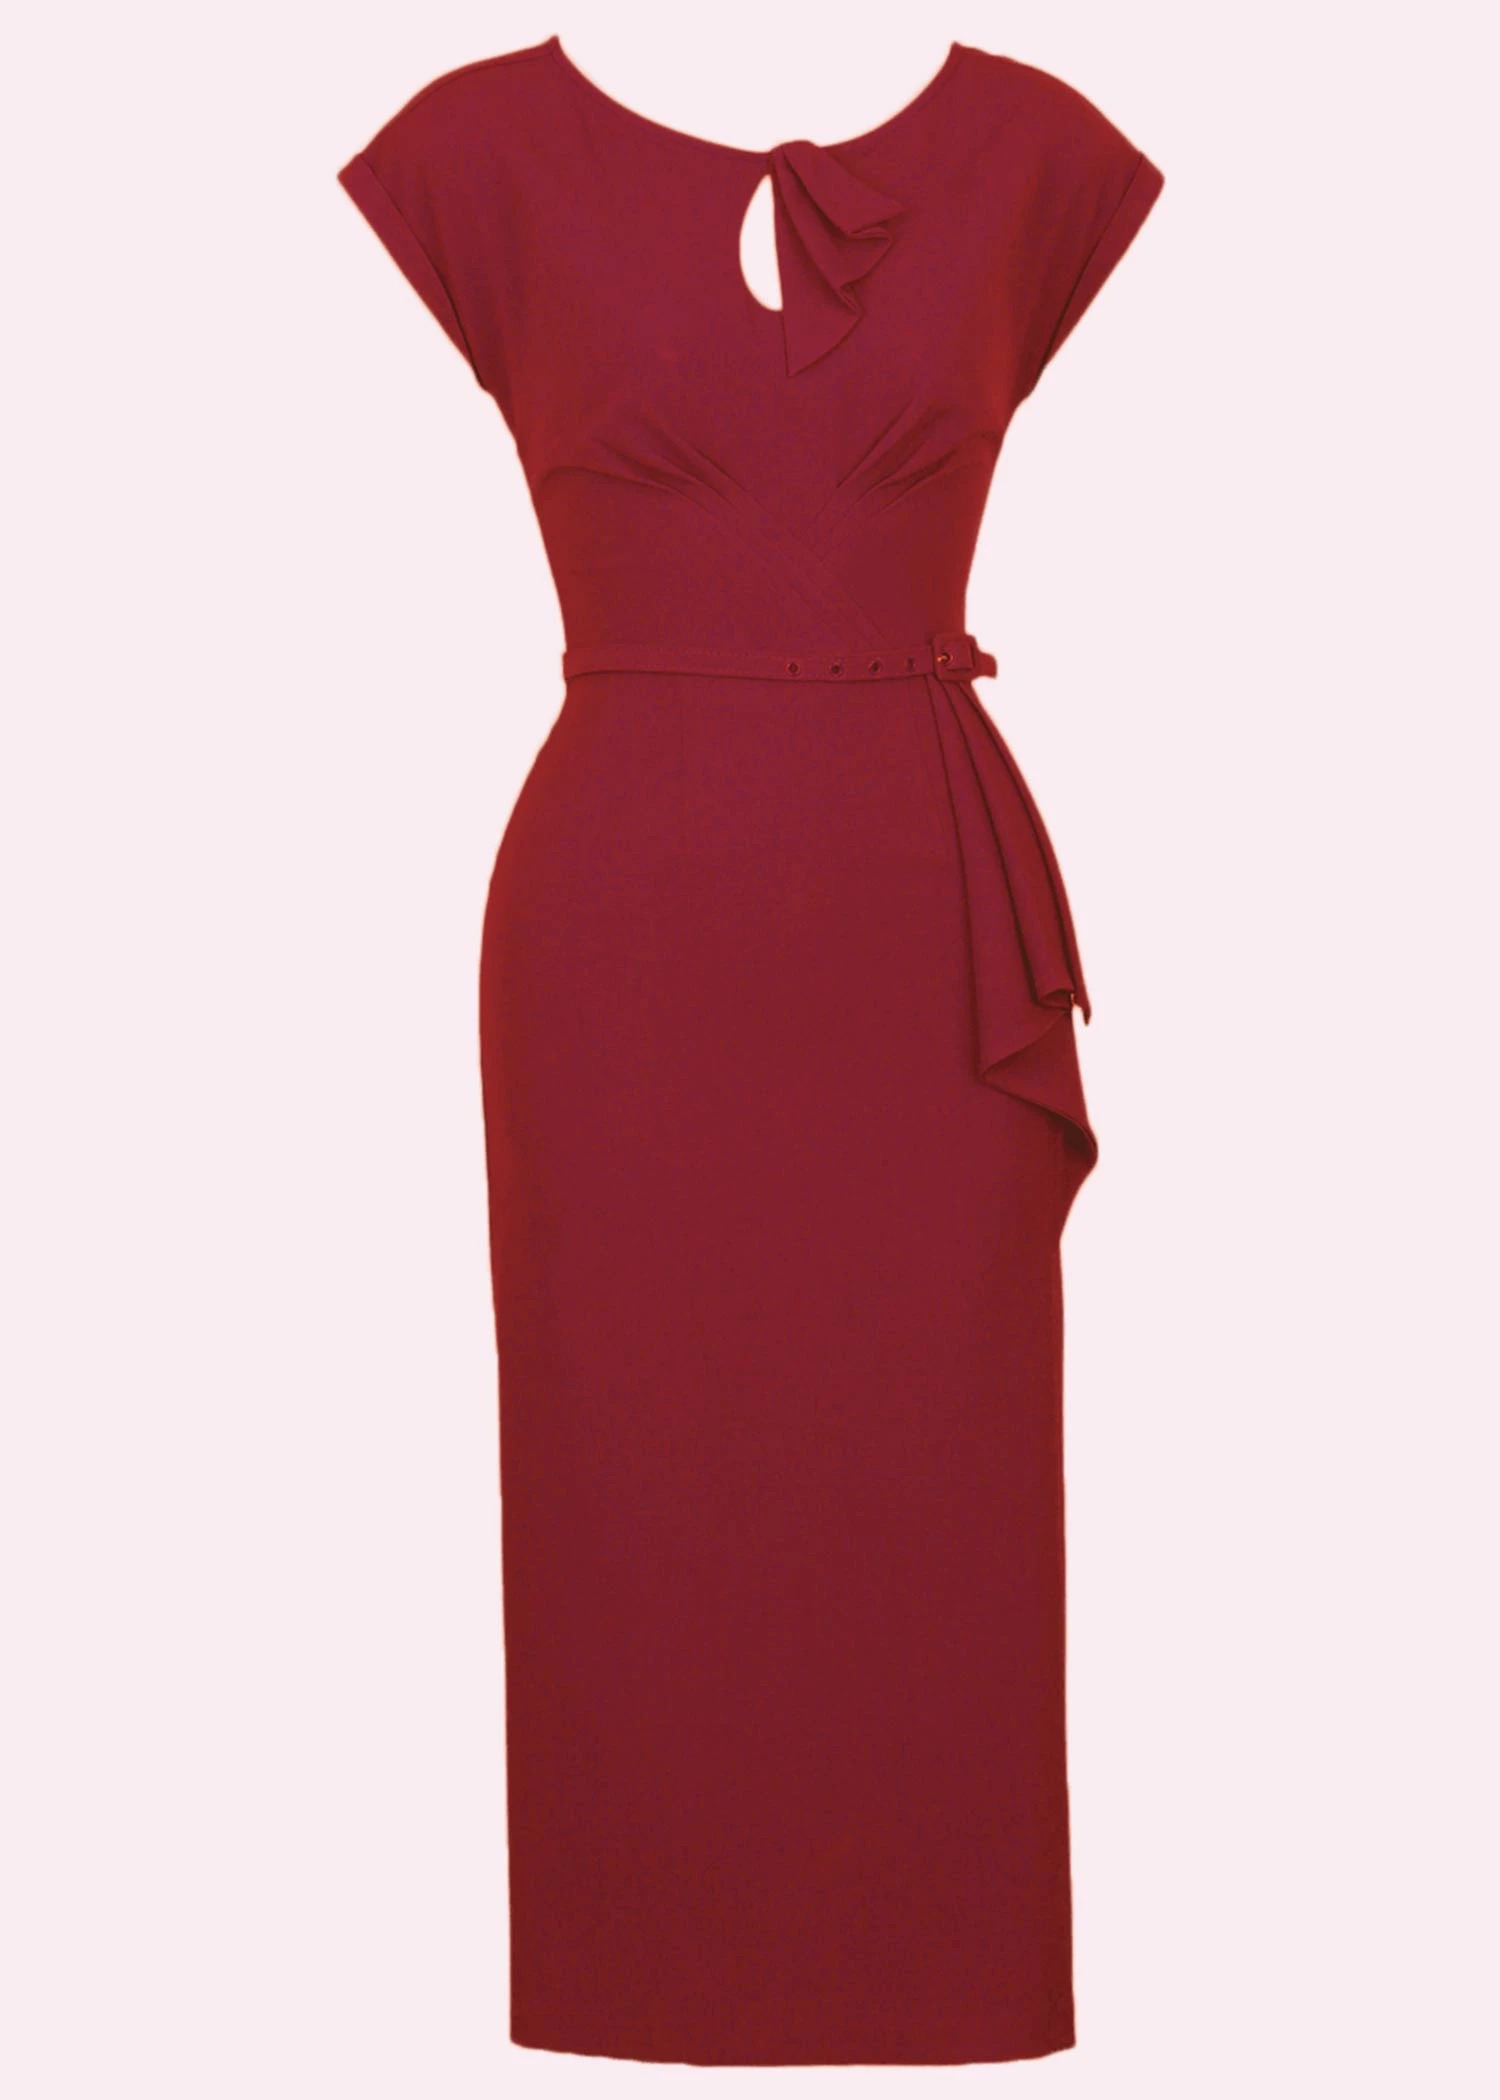 Red pencil dress with art deco details